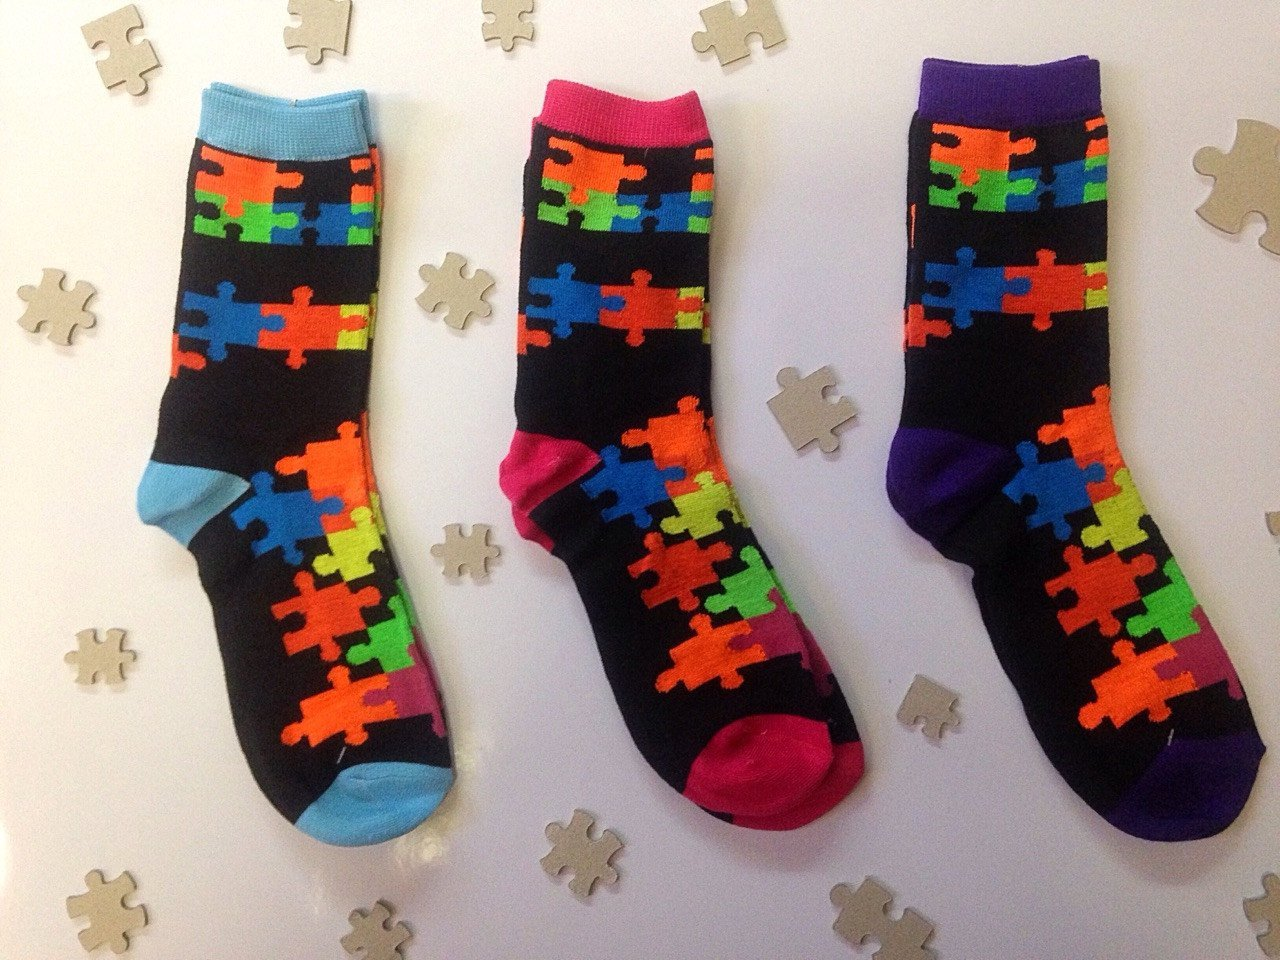 Jigsaw Puzzle Design Socks.  SALE